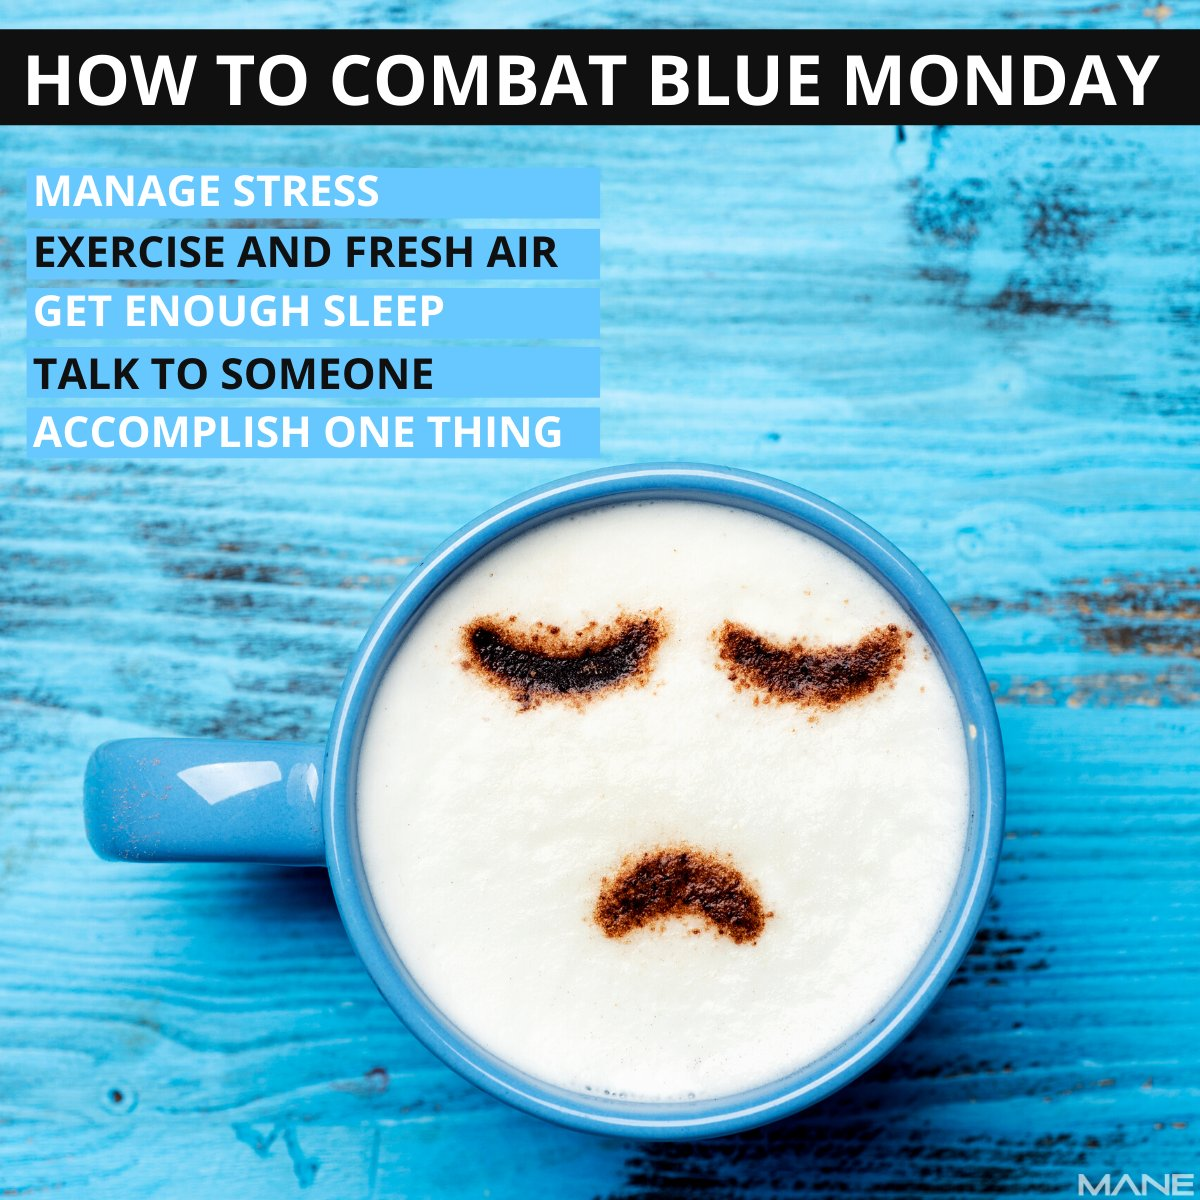 Blue Monday - created by a British holiday company.  Despite Blue Monday not being an official day, many do suffer from depression all year-round.  Here are 5 ways to combat Blue Monday.  #bluemonday #depressionawareness #listeningskills #helpingothers